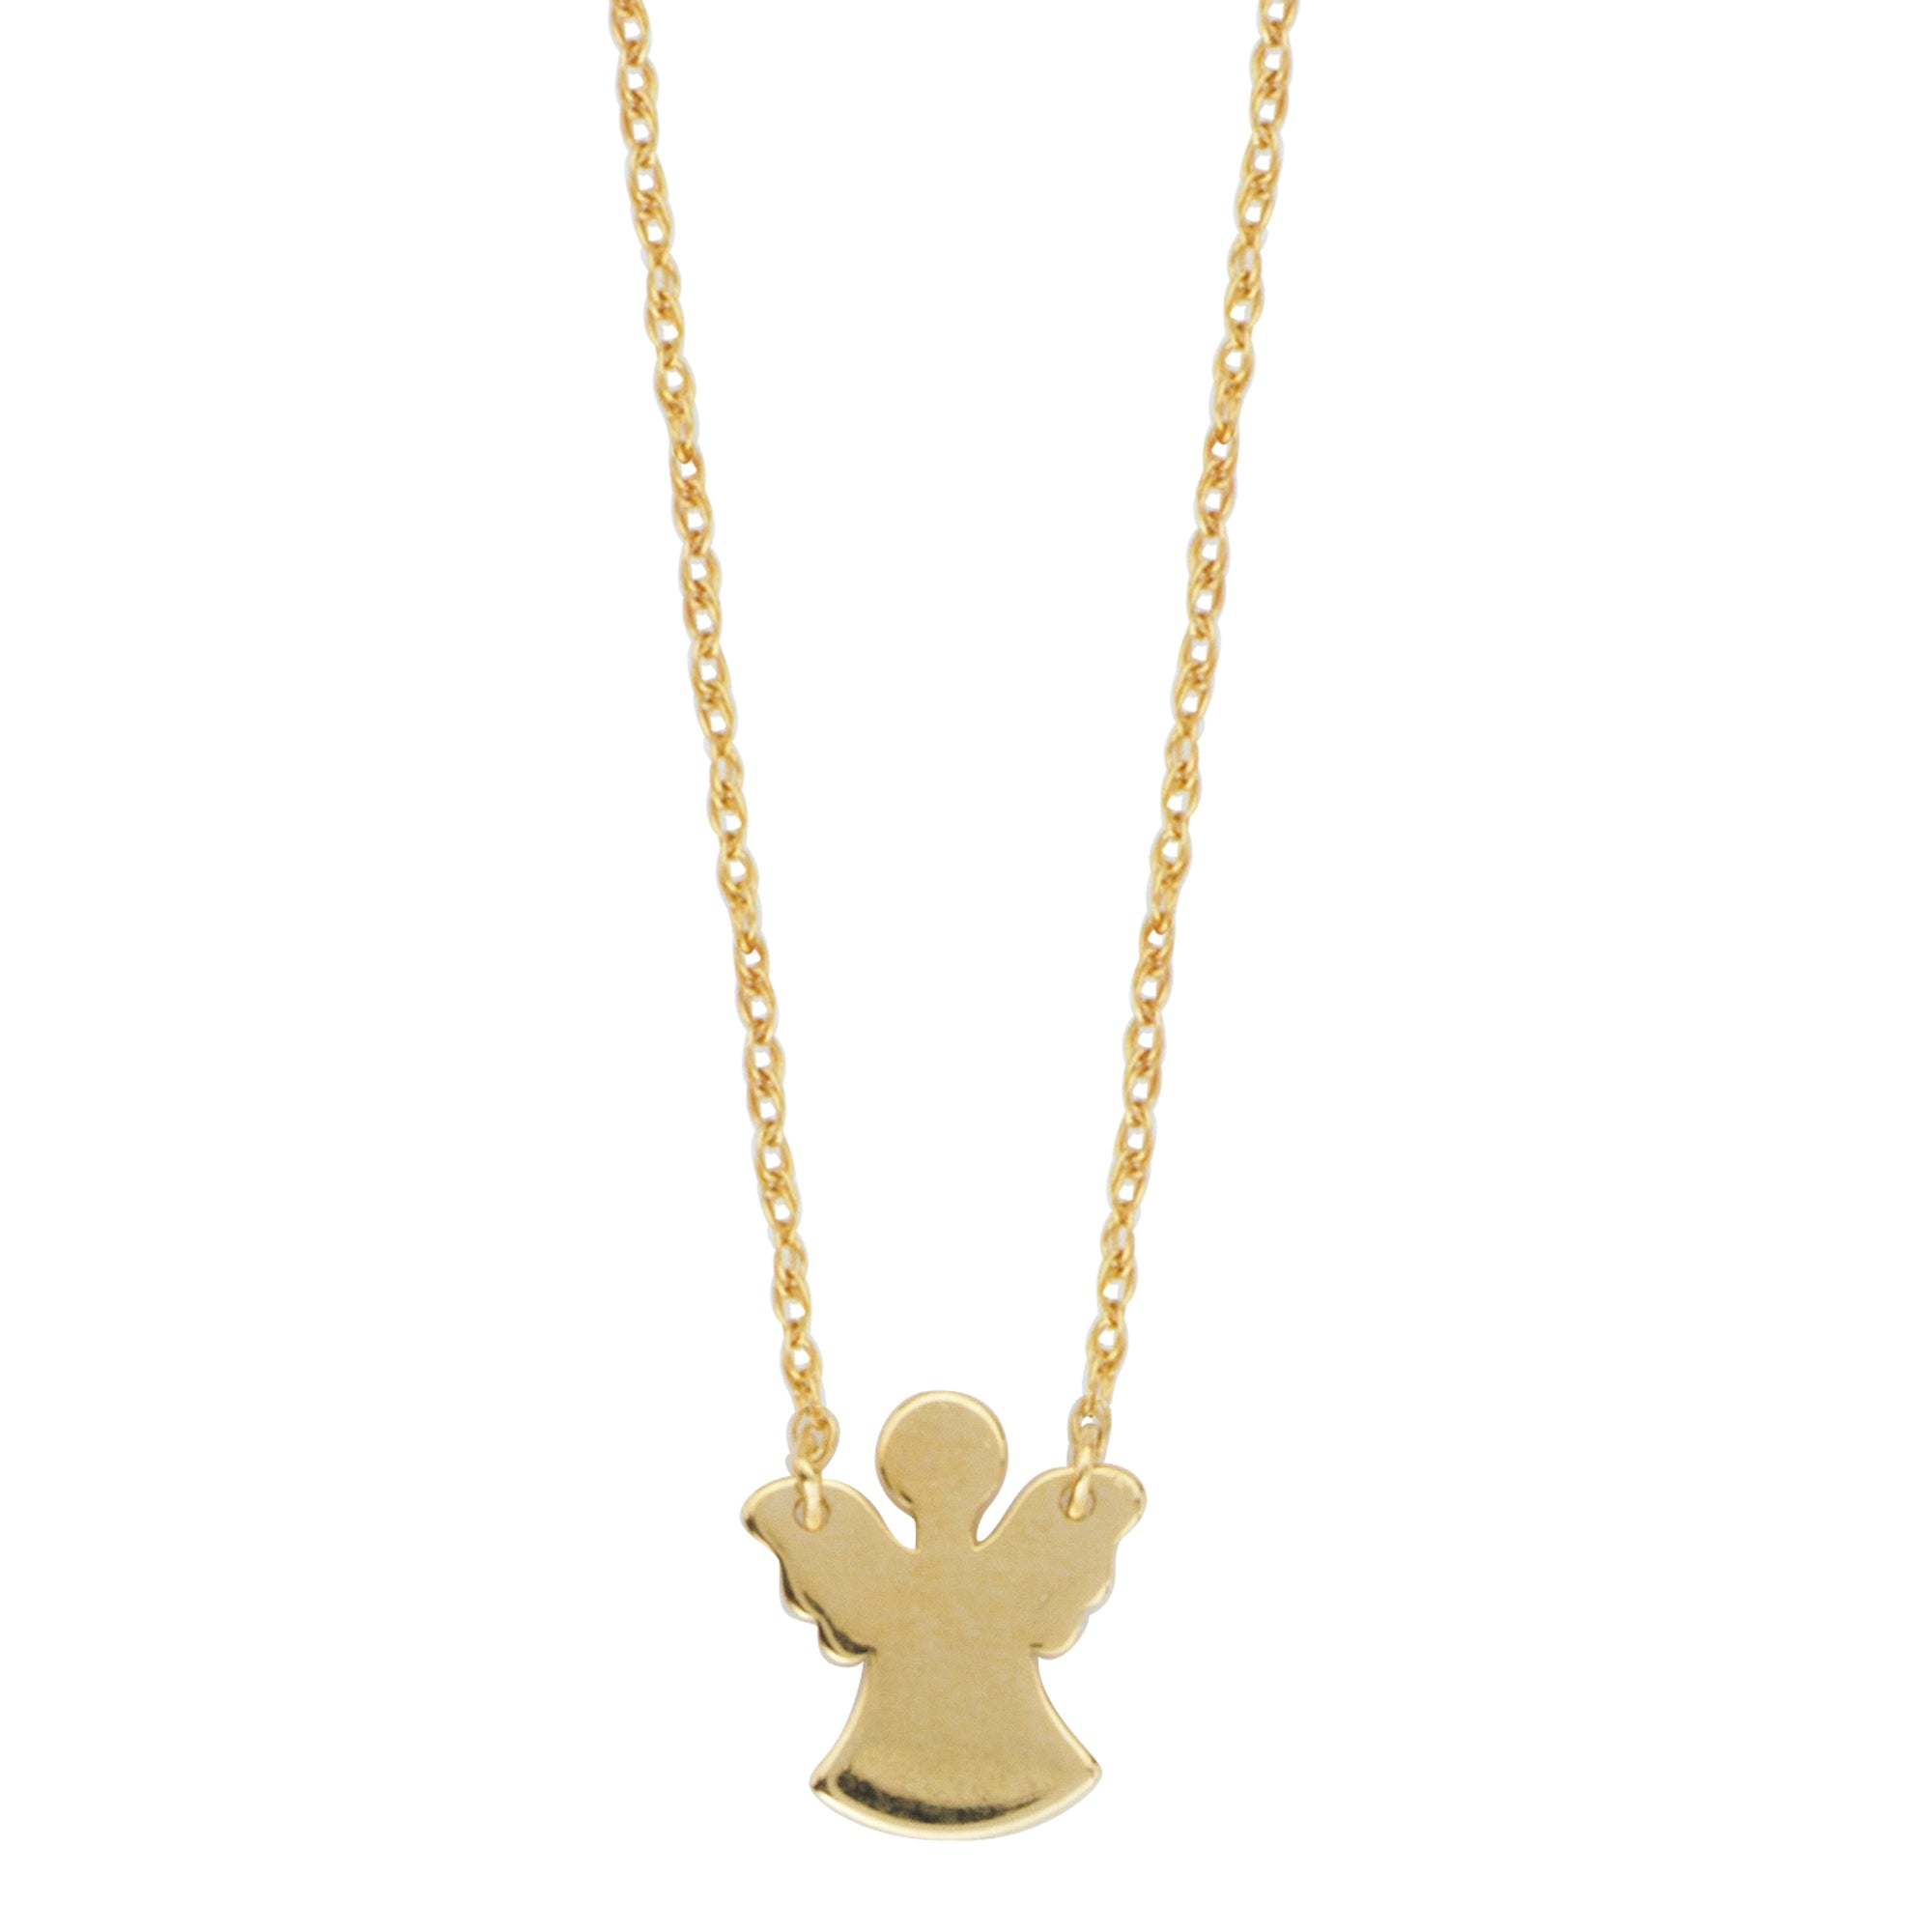 14K Yellow Gold Mini Angel Cut Out Necklace With Rope Chain